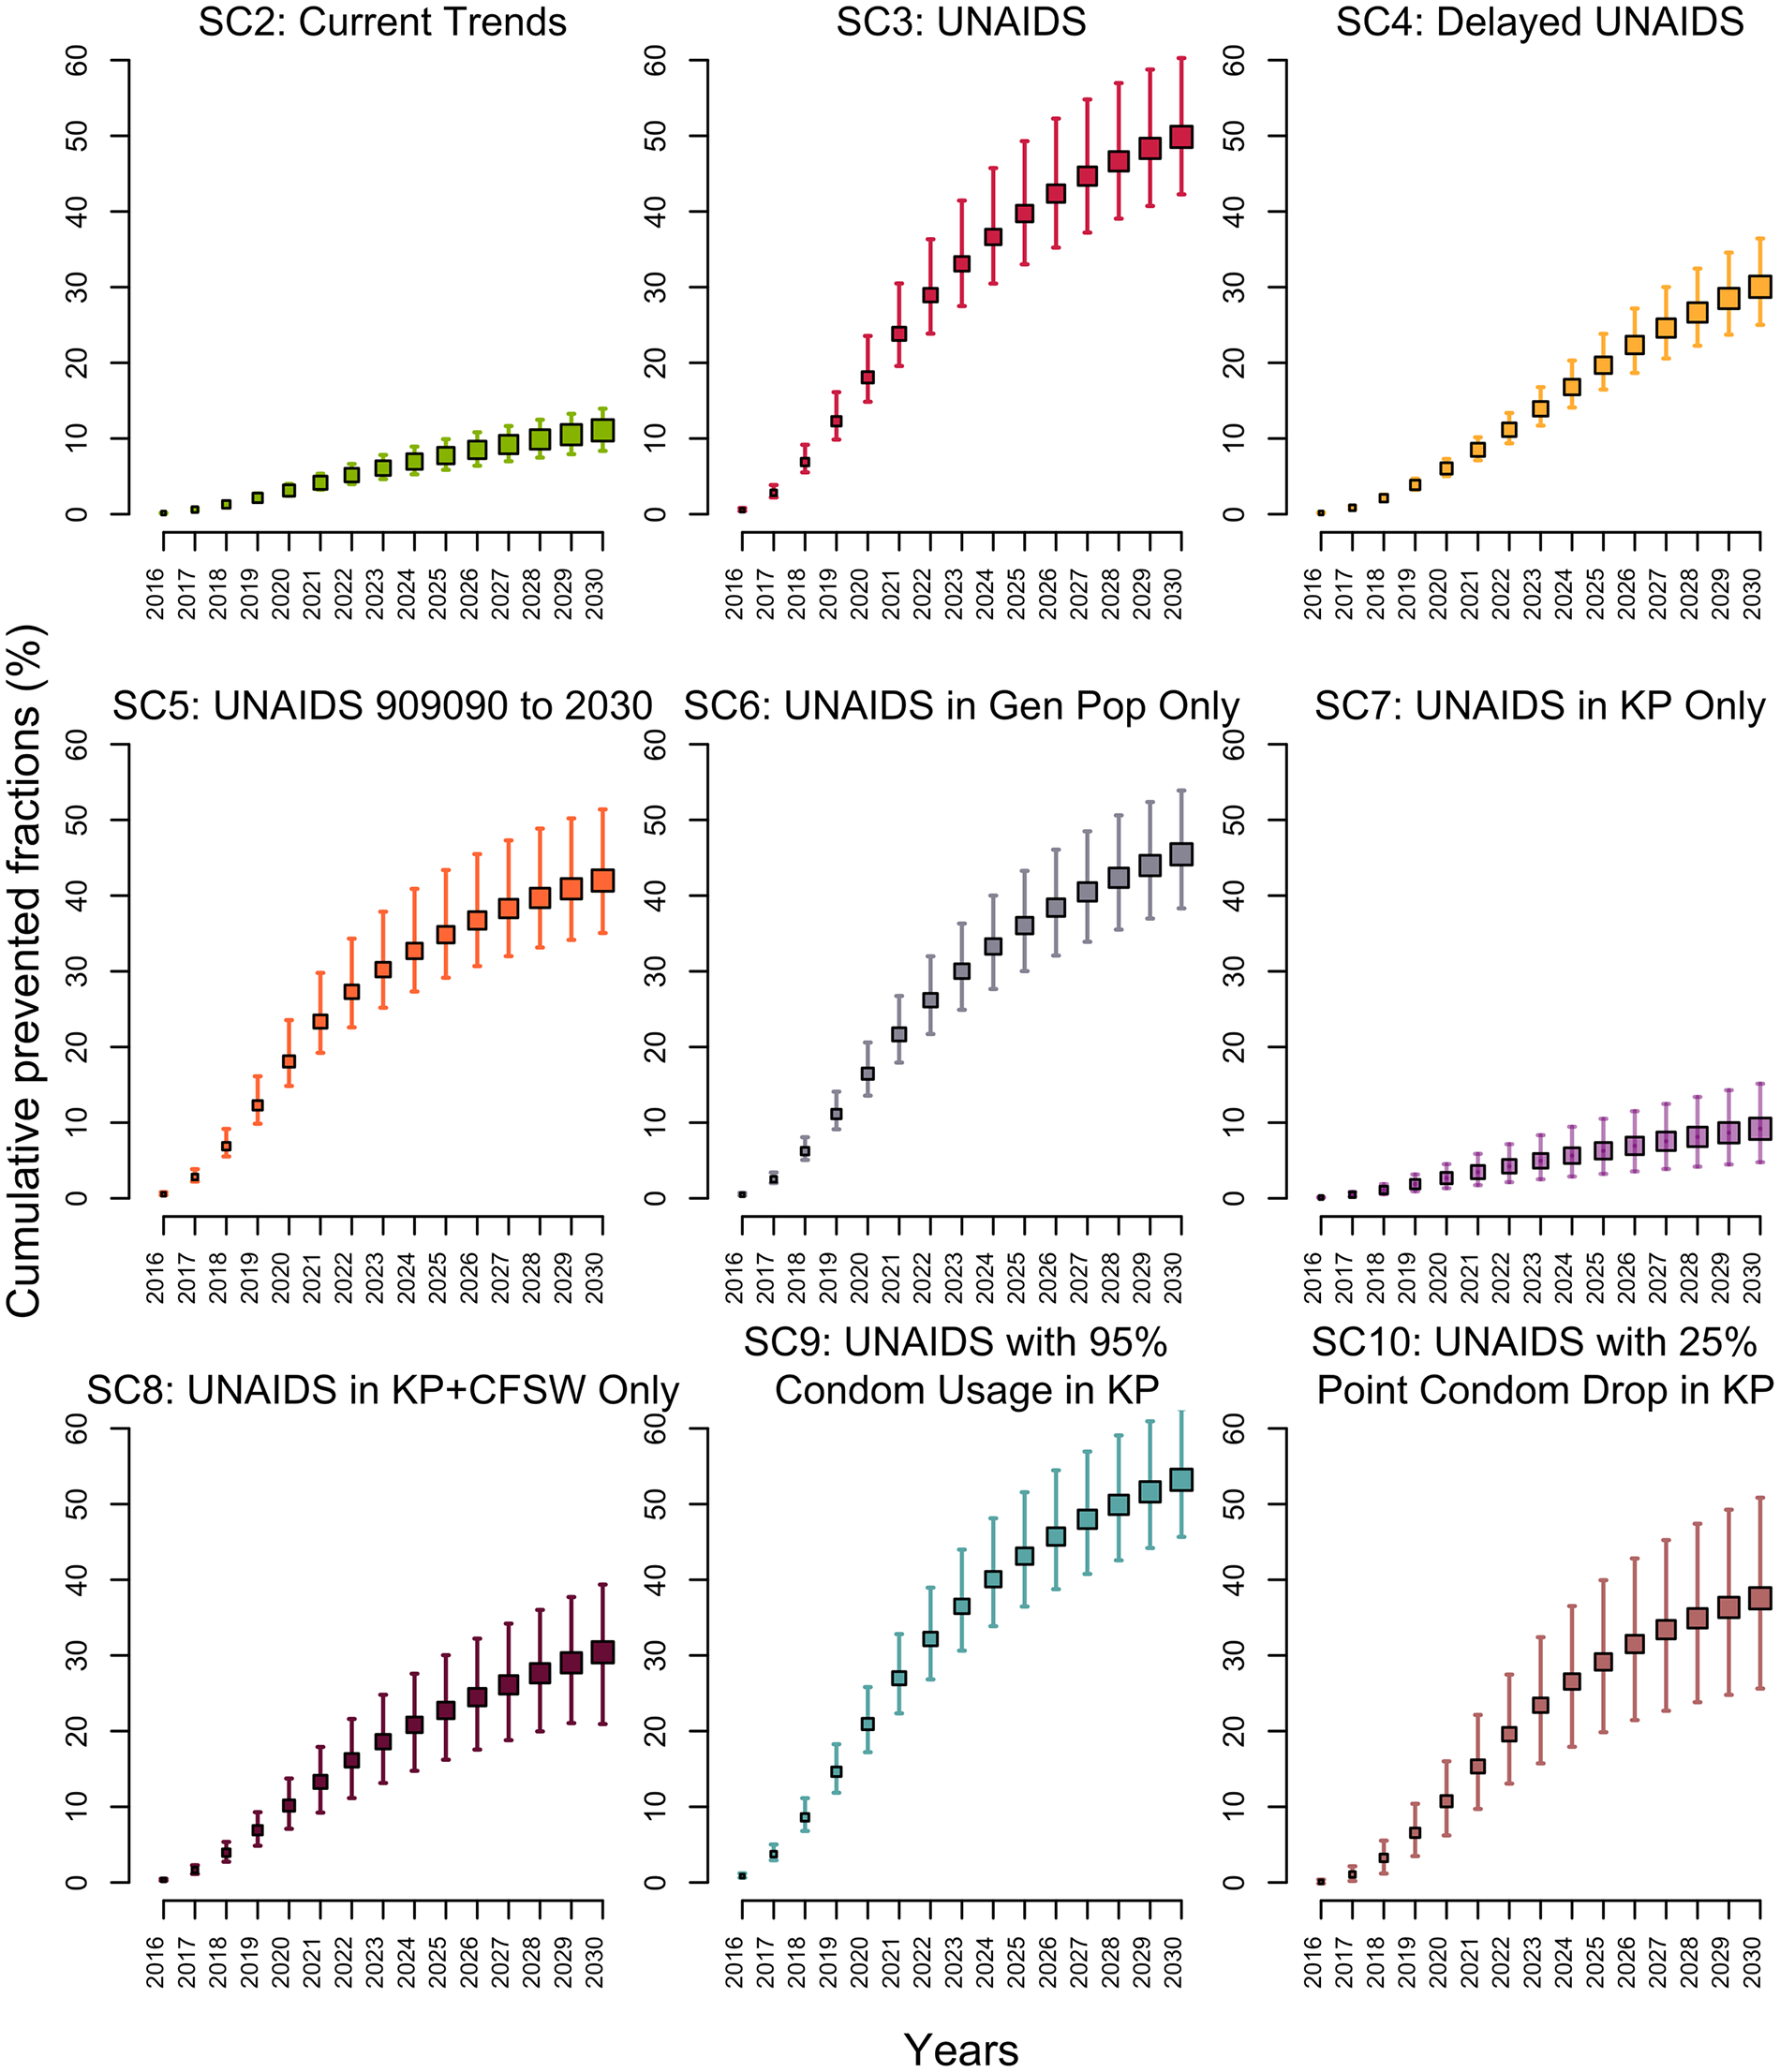 Cumulative fractions of all new HIV infections prevented (medians and 95% credible intervals) among 15–59-year-olds in Côte d'Ivoire between 2015 and 2030 for different intervention scenarios compared to baseline scenario 1 as the counterfactual.